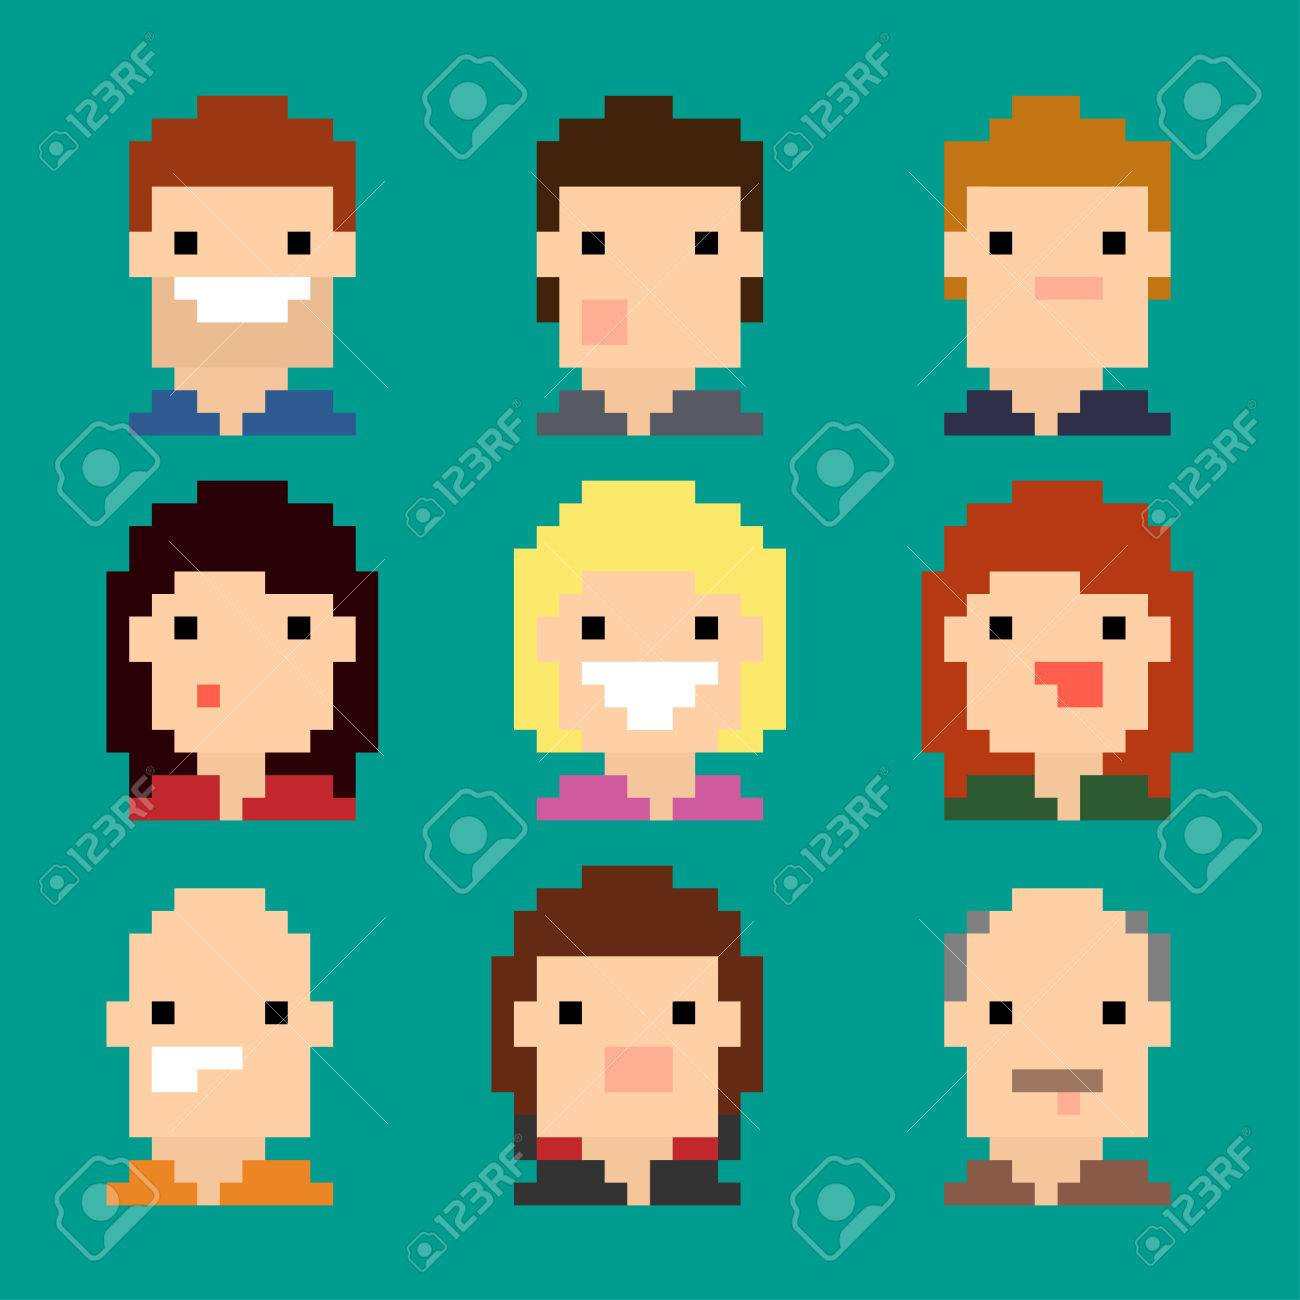 Pixel Art Human Faces Showing Different Expressions